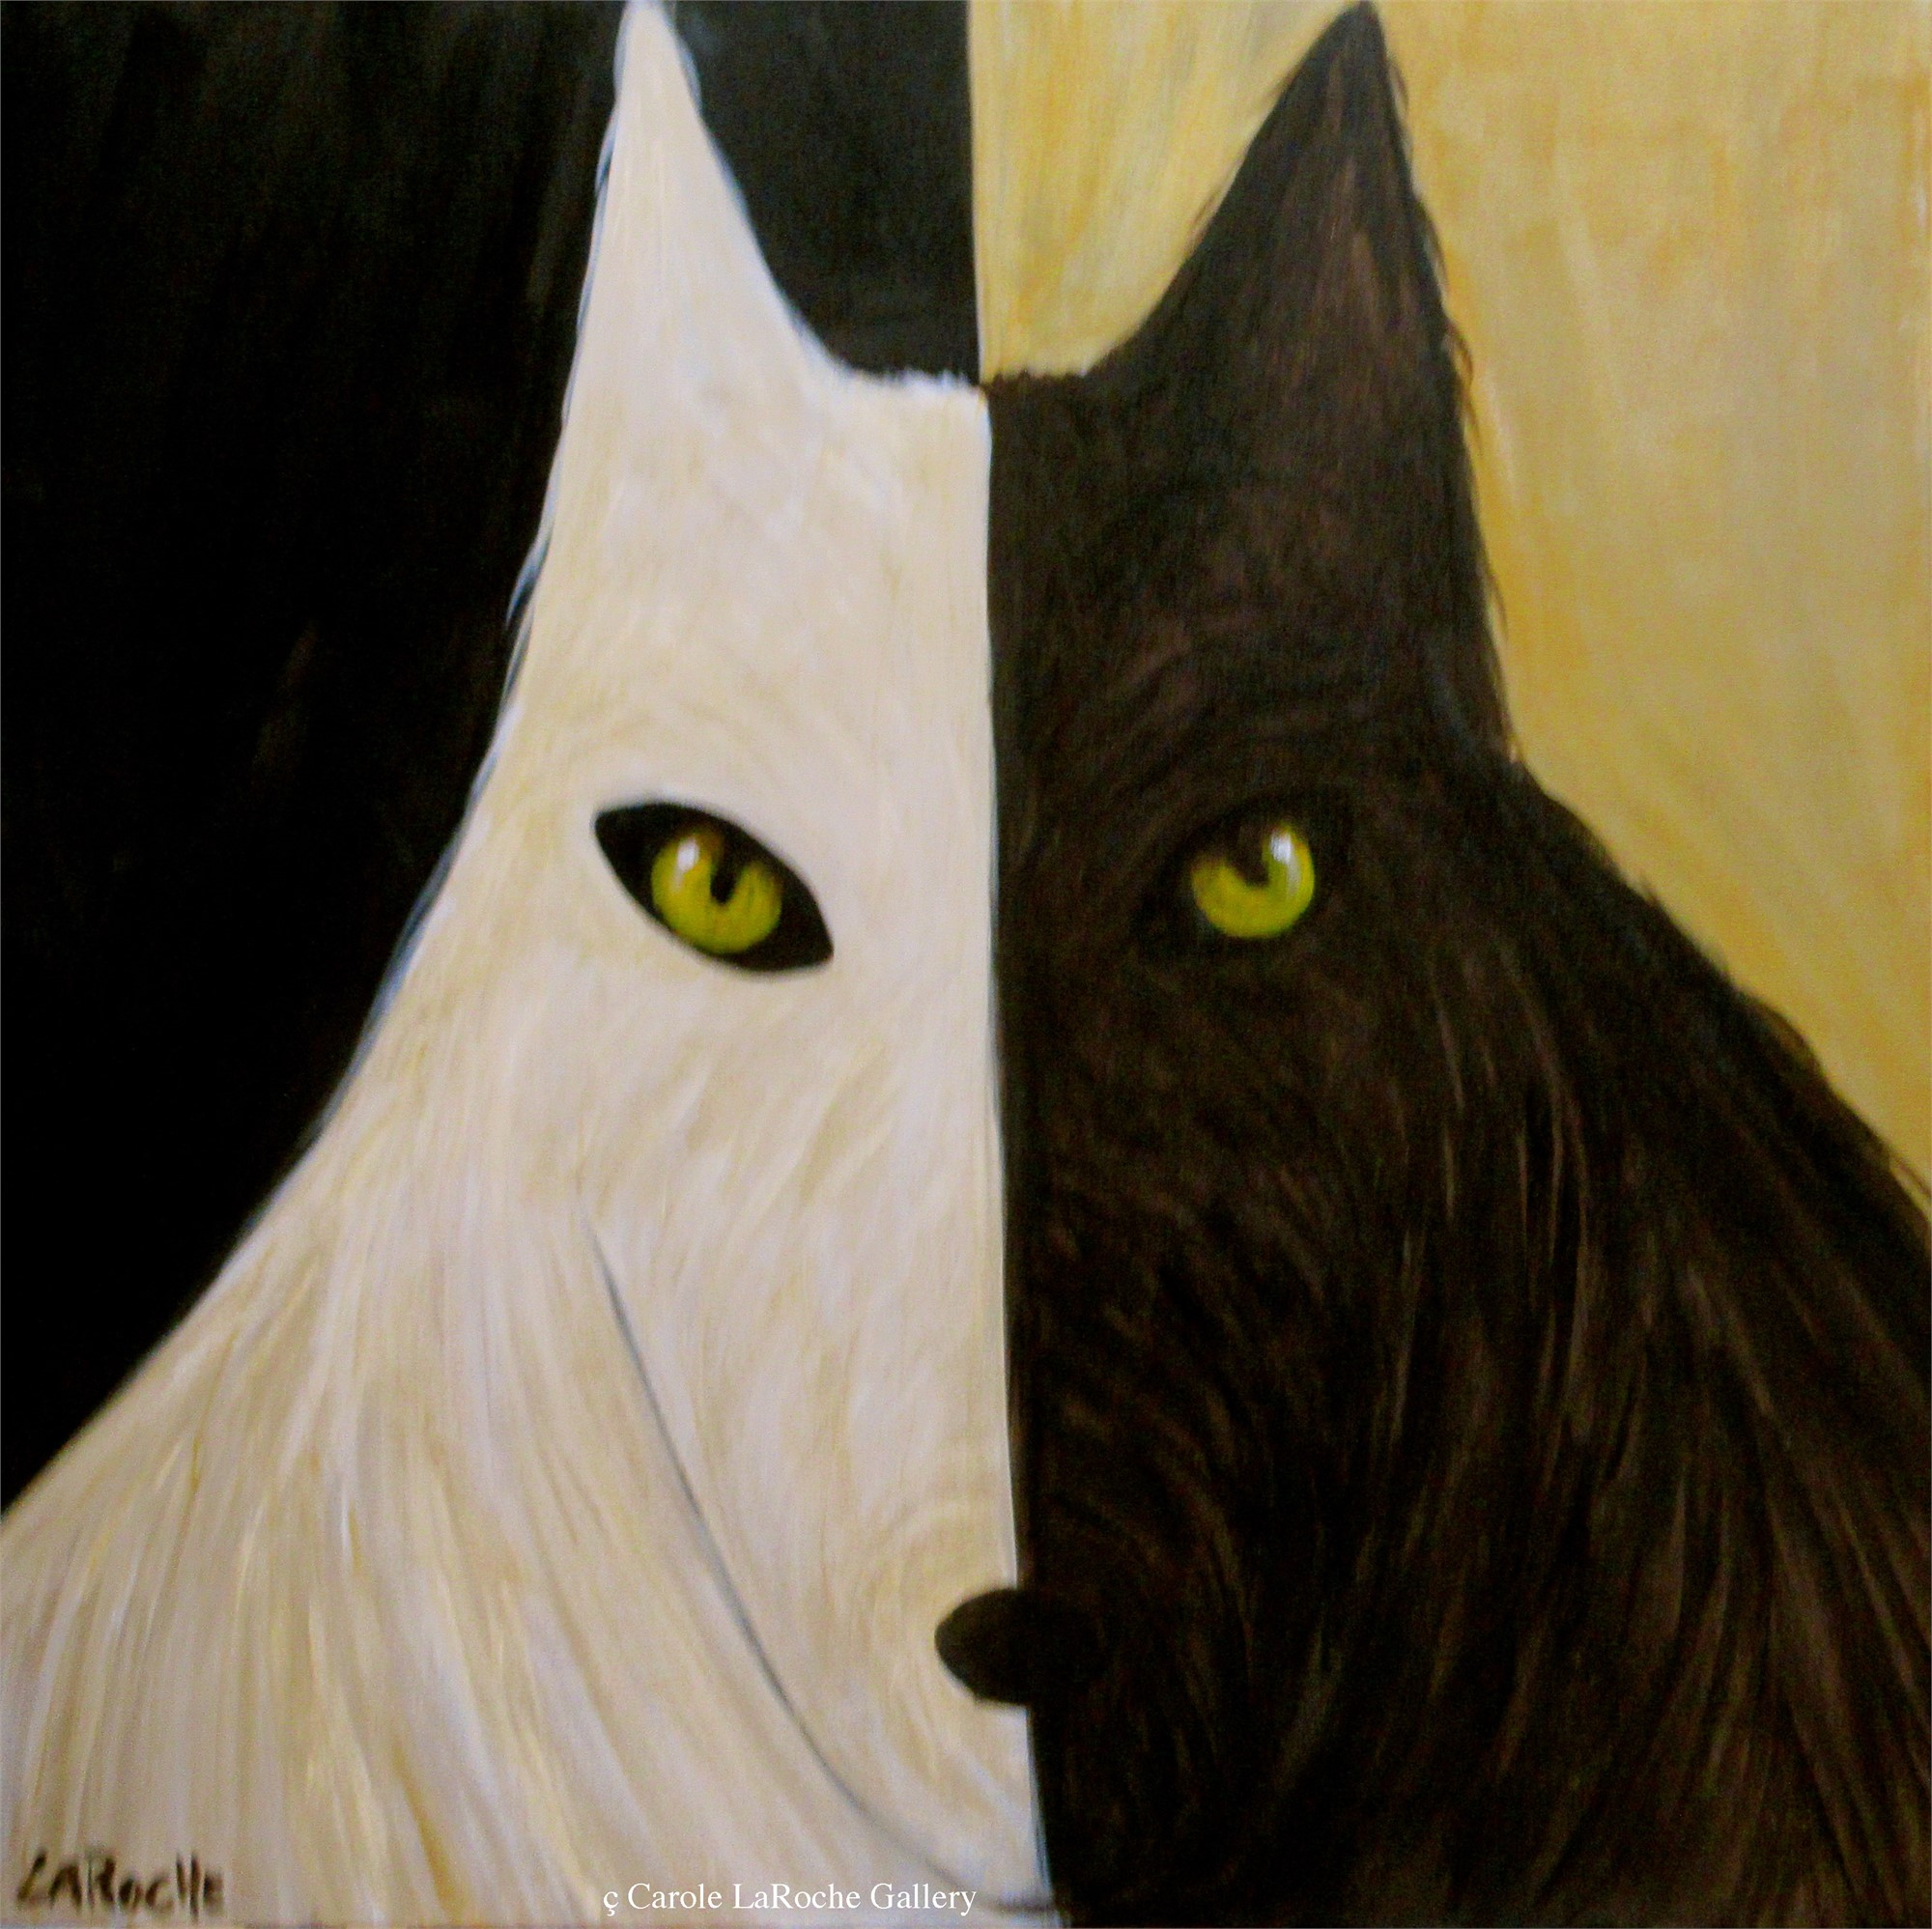 SHADOW WOLF by Carole LaRoche